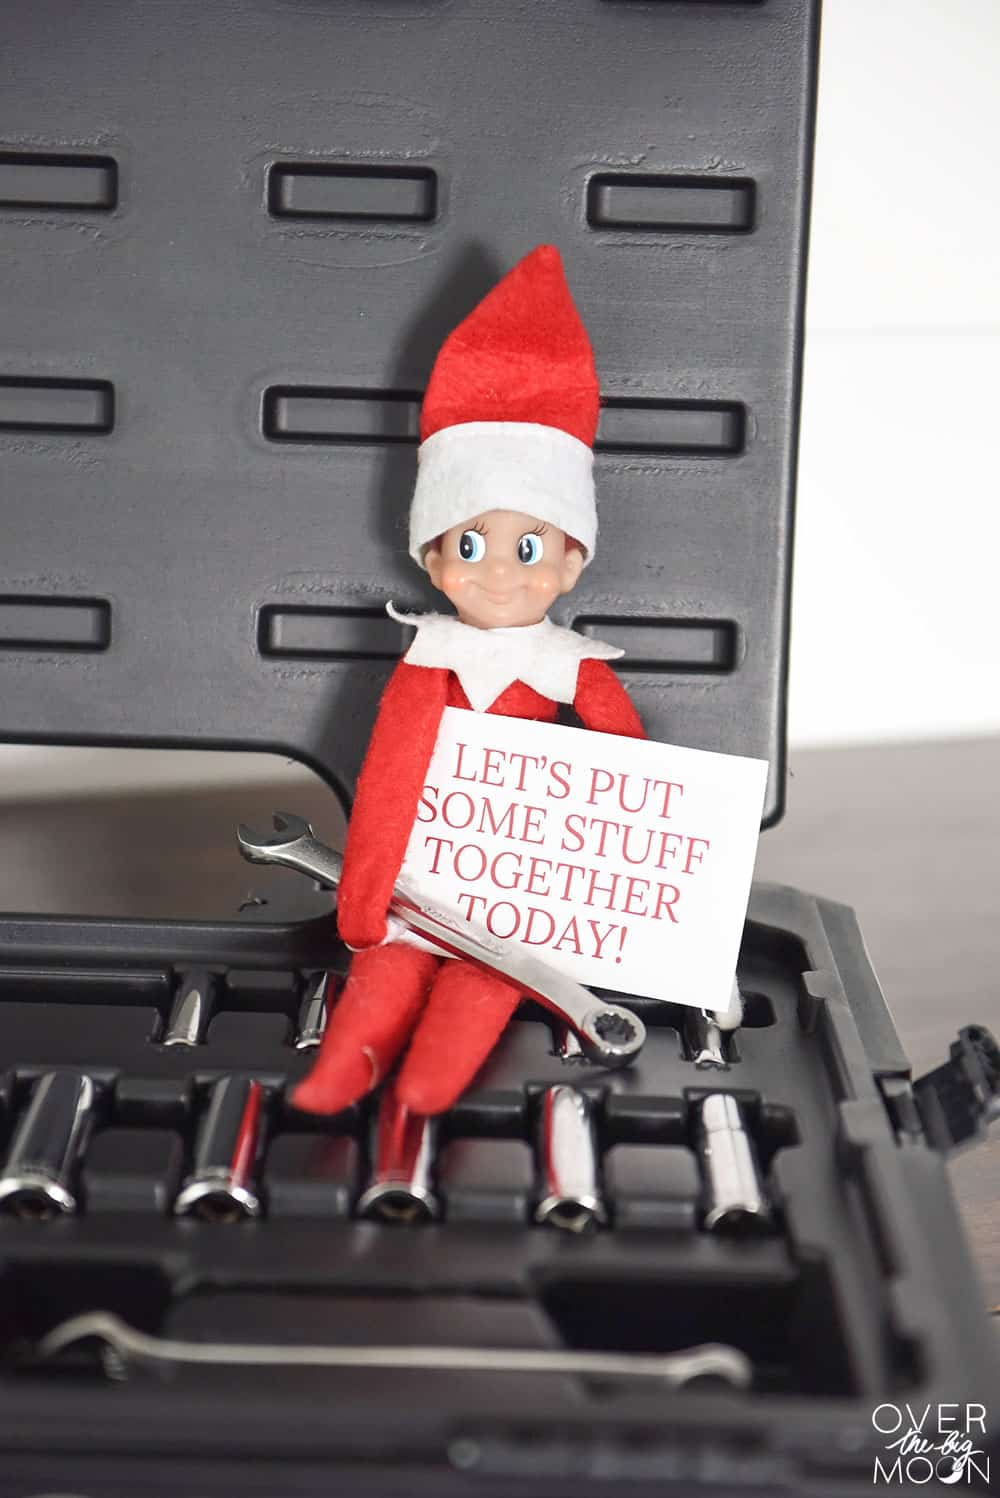 The Helpful Elf is so fun during the holidays! Come get a list of fun helpful ideas! From overthebigmoon.com!